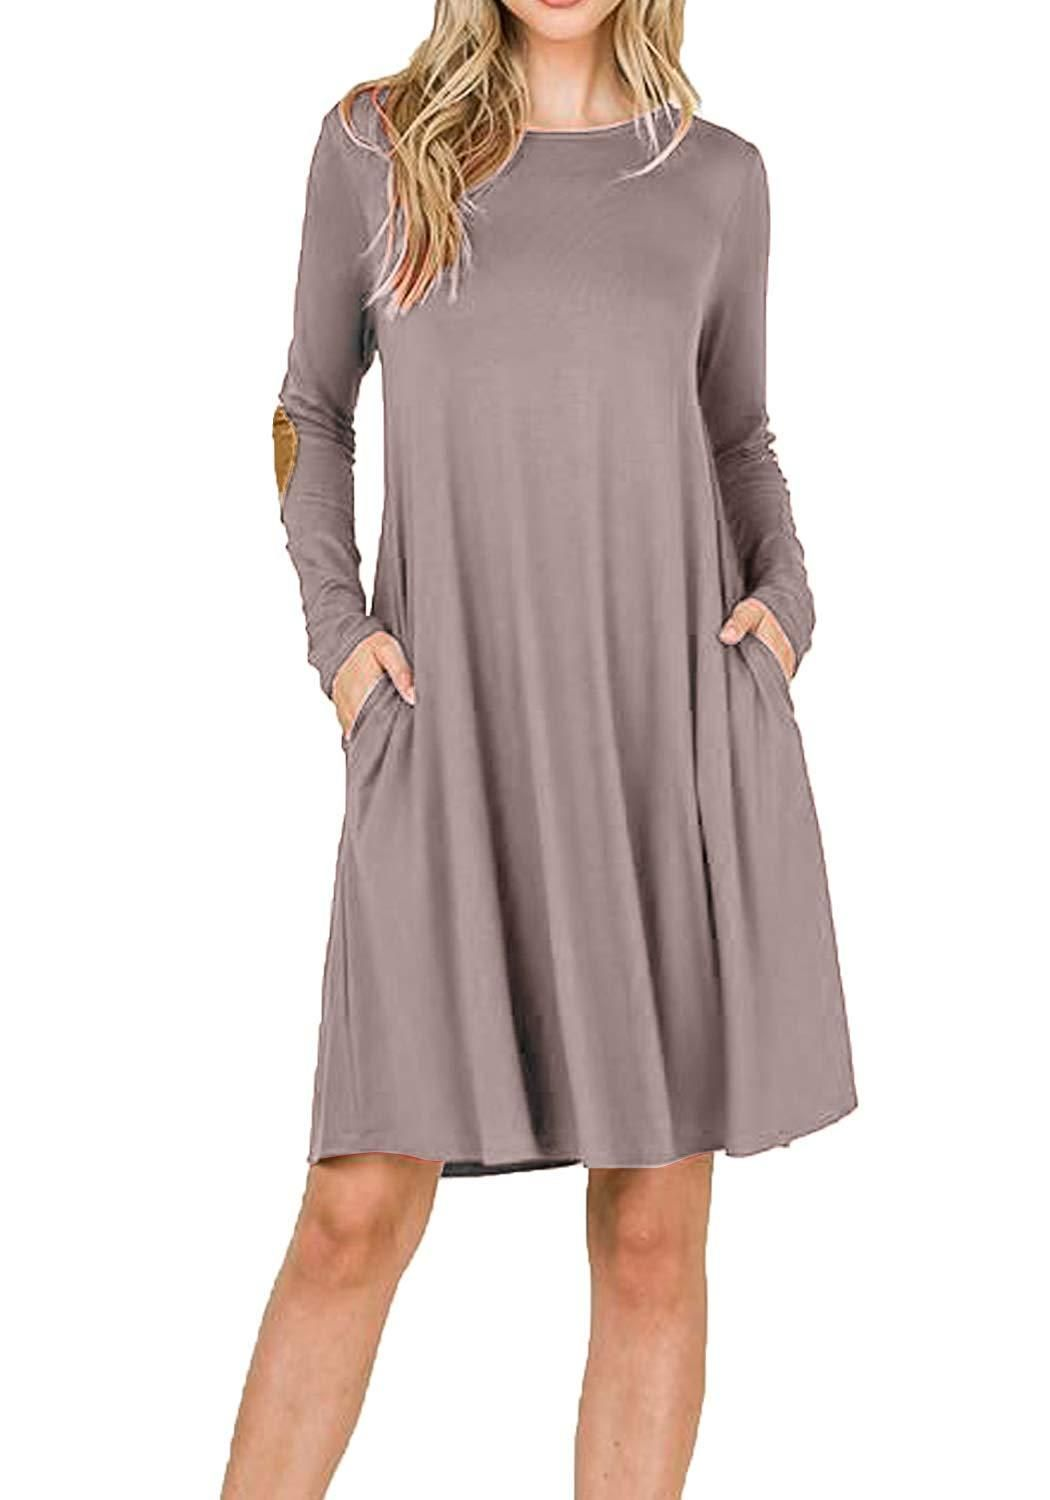 a6f14b5779585 LAINAB Women s Long Sleeve Pockets Casual Loose Swing T Shirt Dress ...